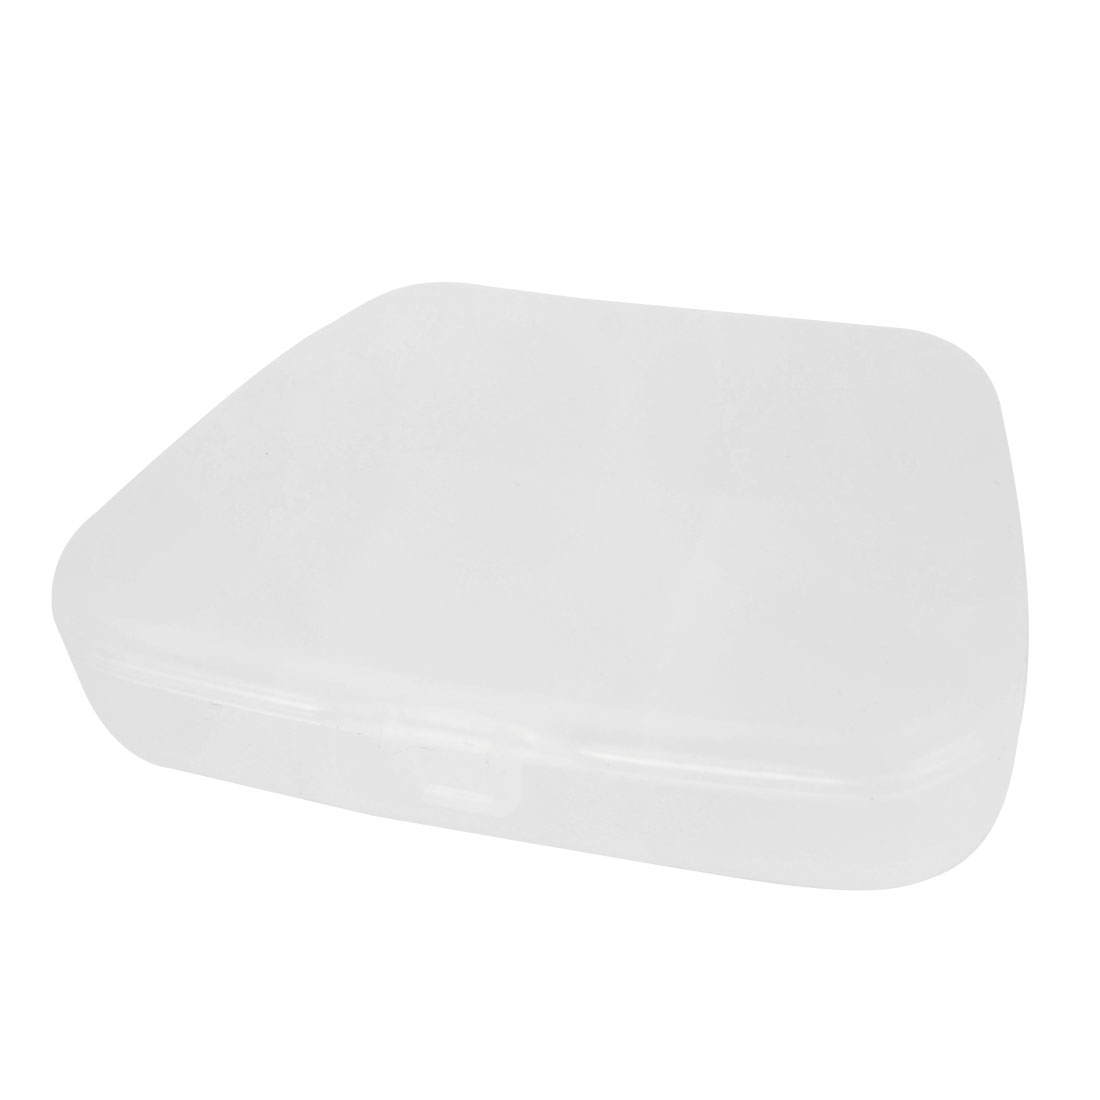 Home Travel Clear White Plastic Capsules Pills Storage Box Container